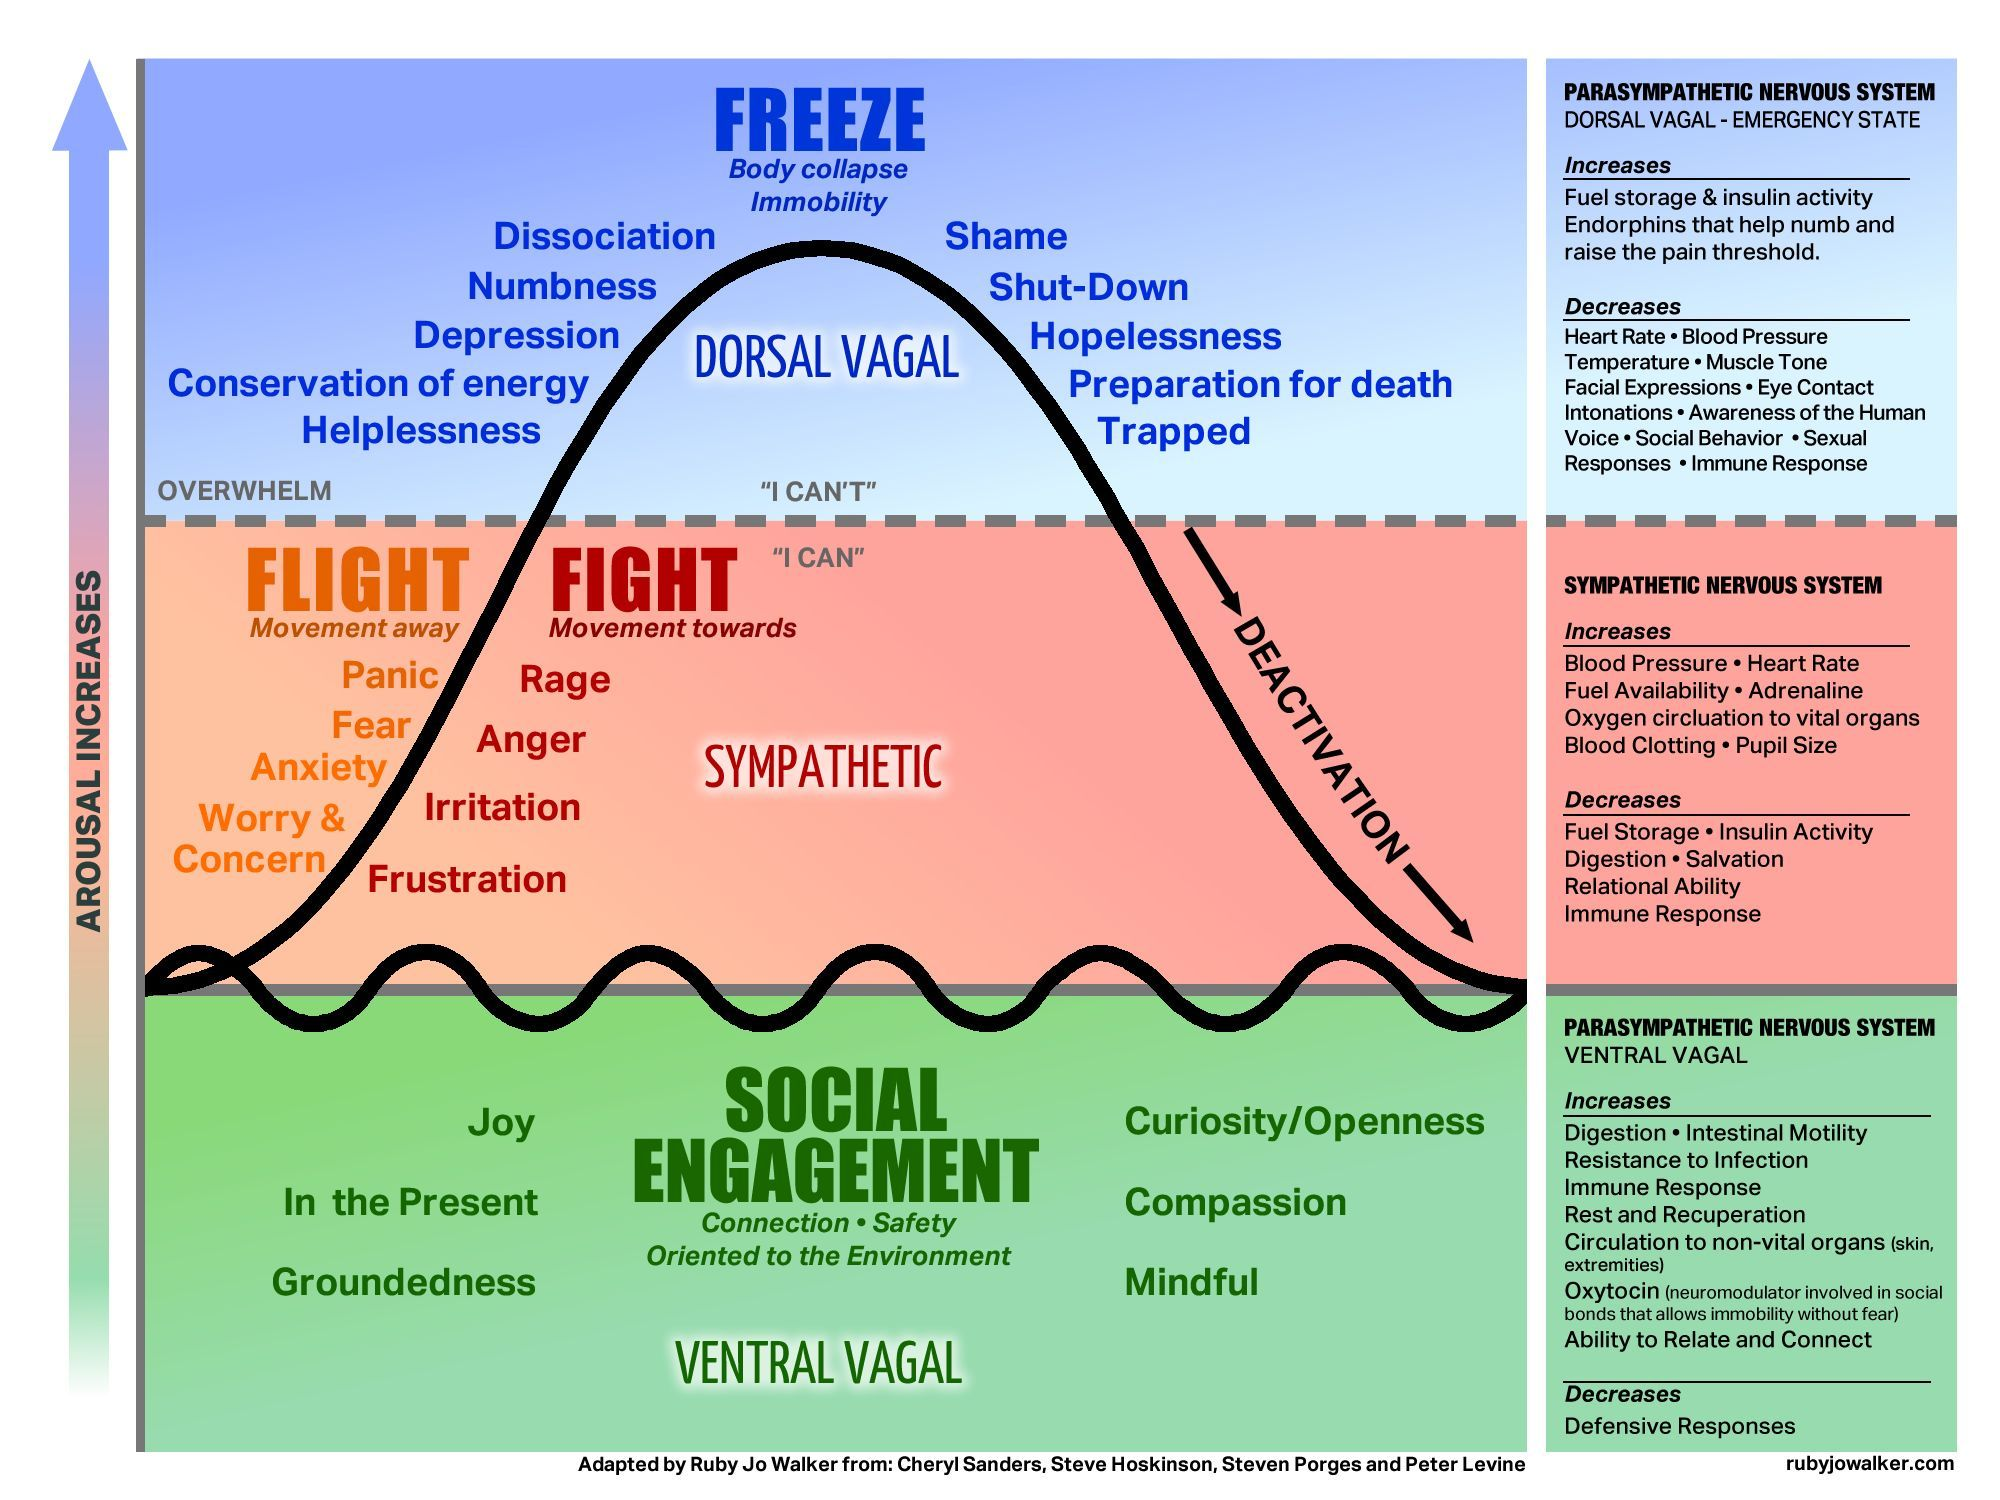 Theory, Fight, Freeze or Engage The autonomic nervous system is a control system that regulates bodily functions, over which we have no control such as the heart rate, digestion, respiratory rate, pupillary response etc. The basi…The autonomic nervous system is a control system that regulates bodily functions, over which we have no c...